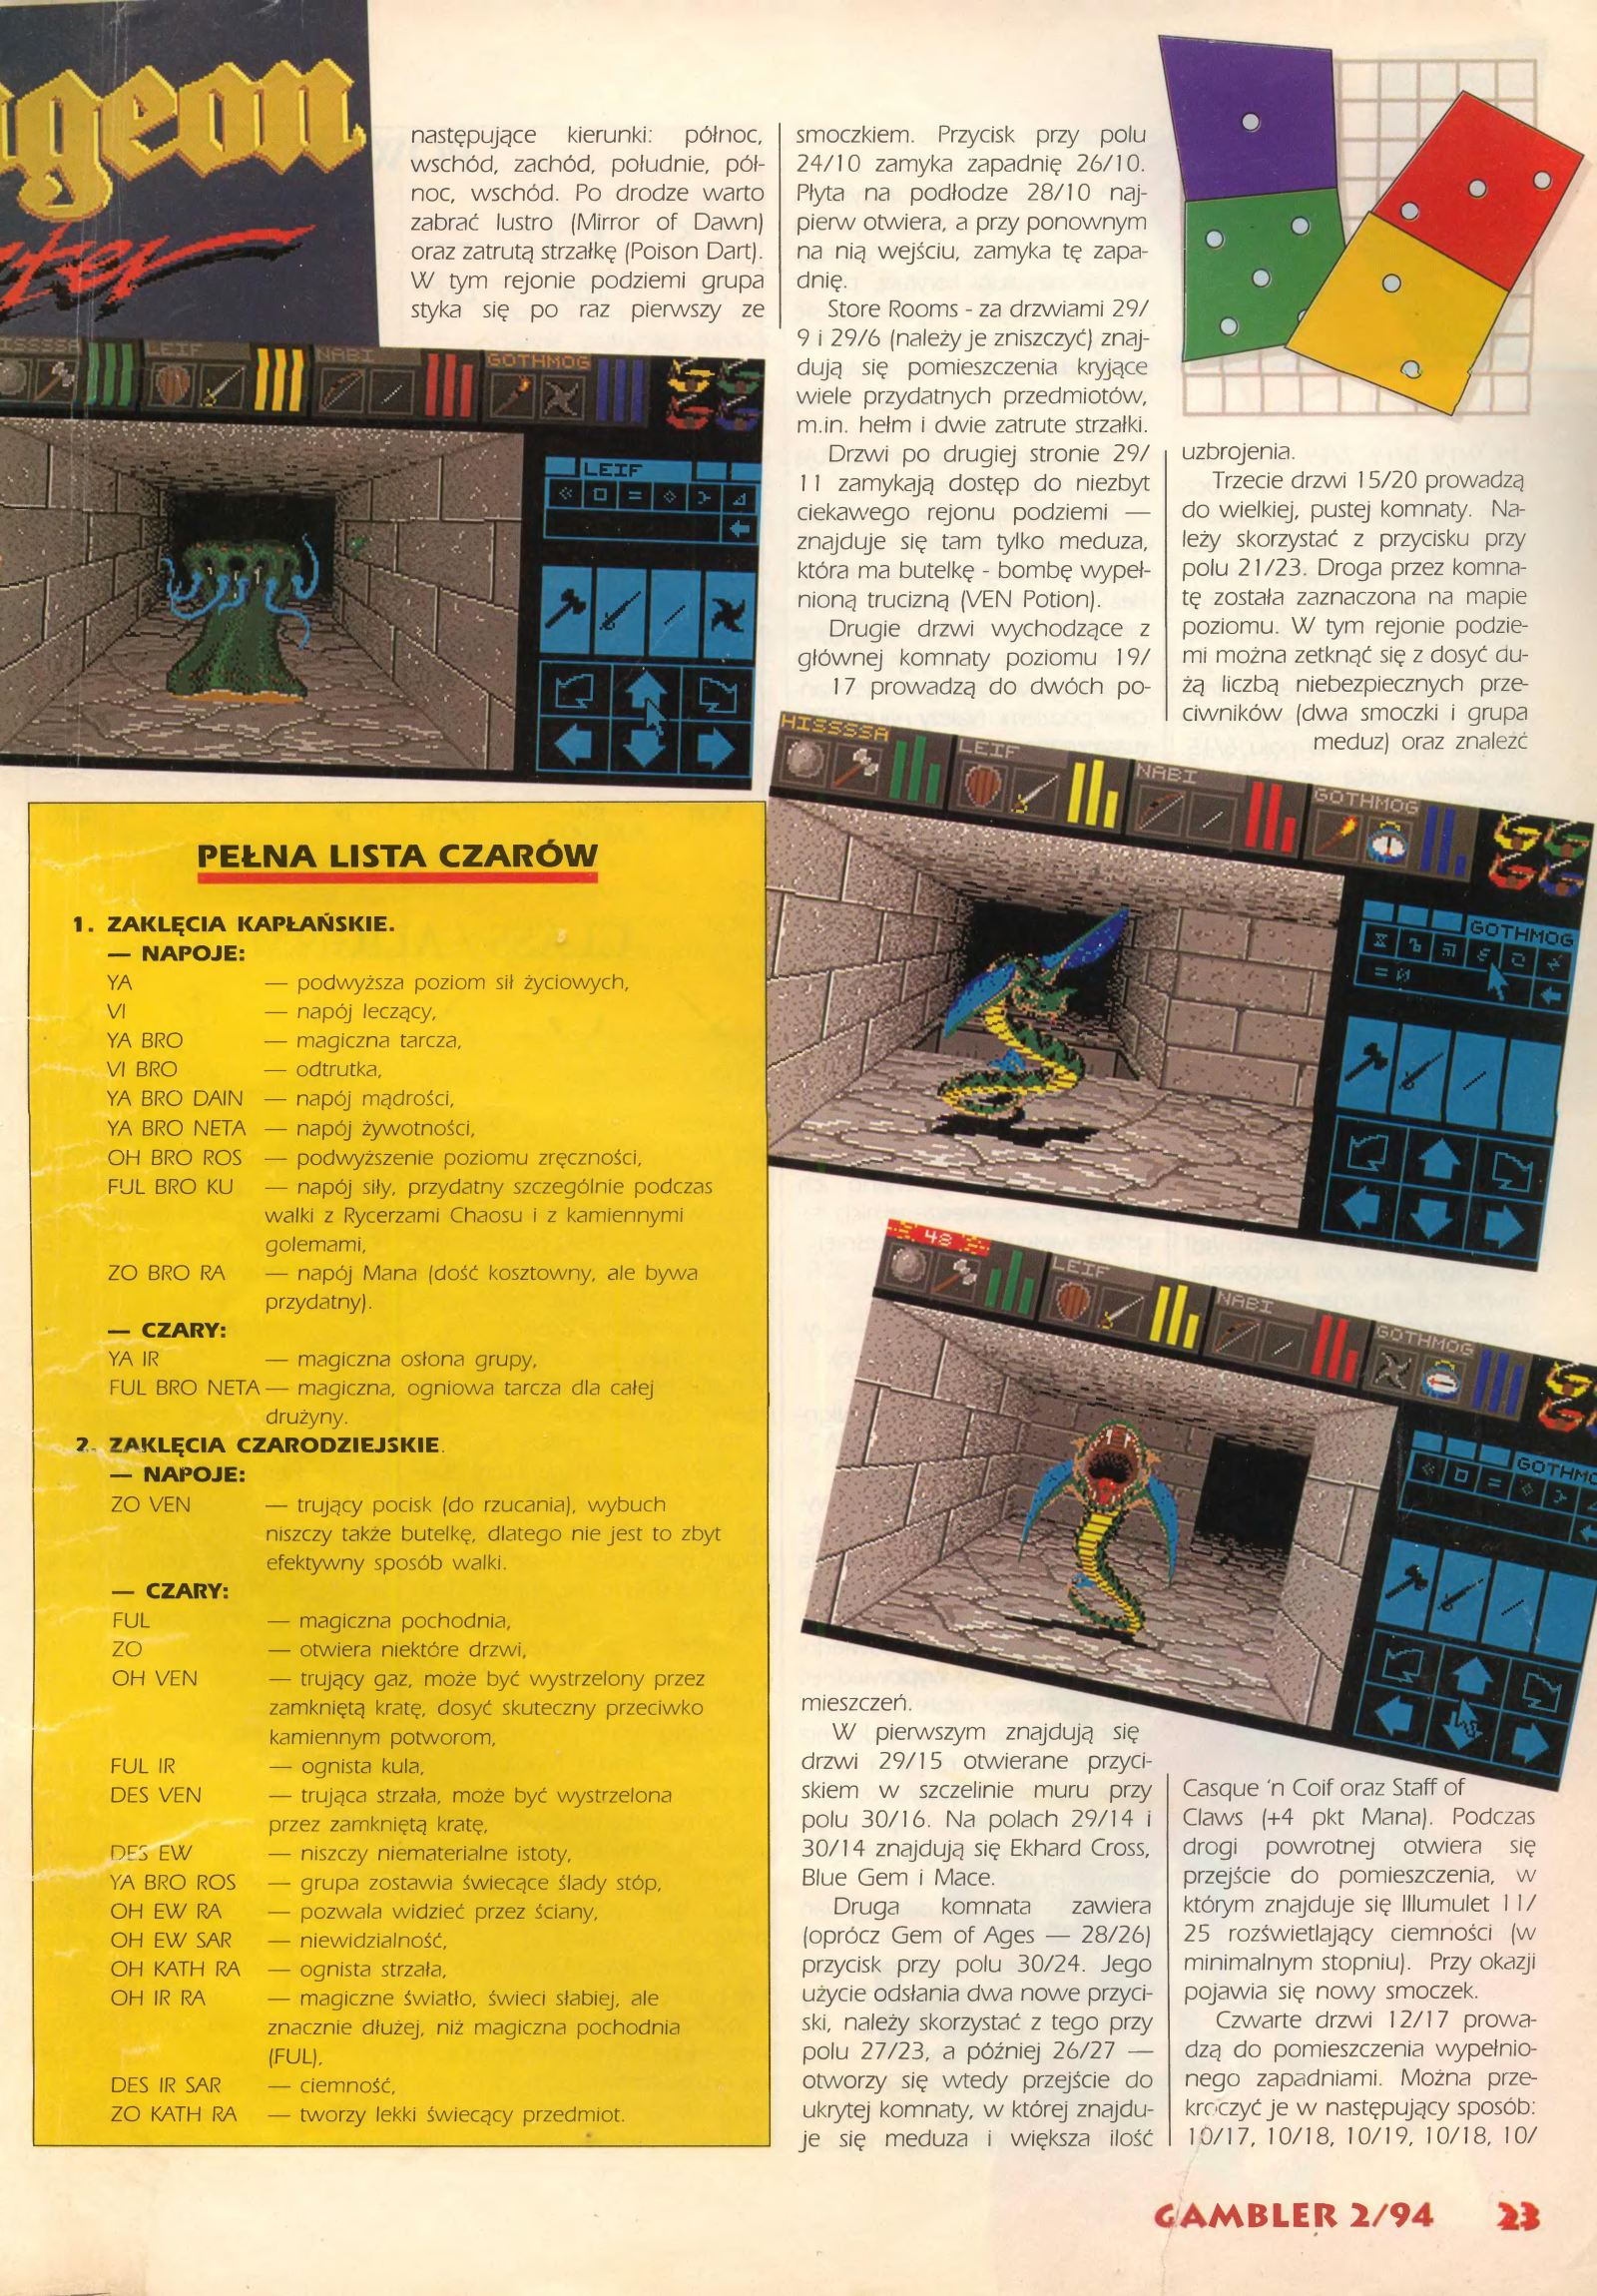 Dungeon Master Guide published in Polish magazine 'Gambler', February 1994, Page 23